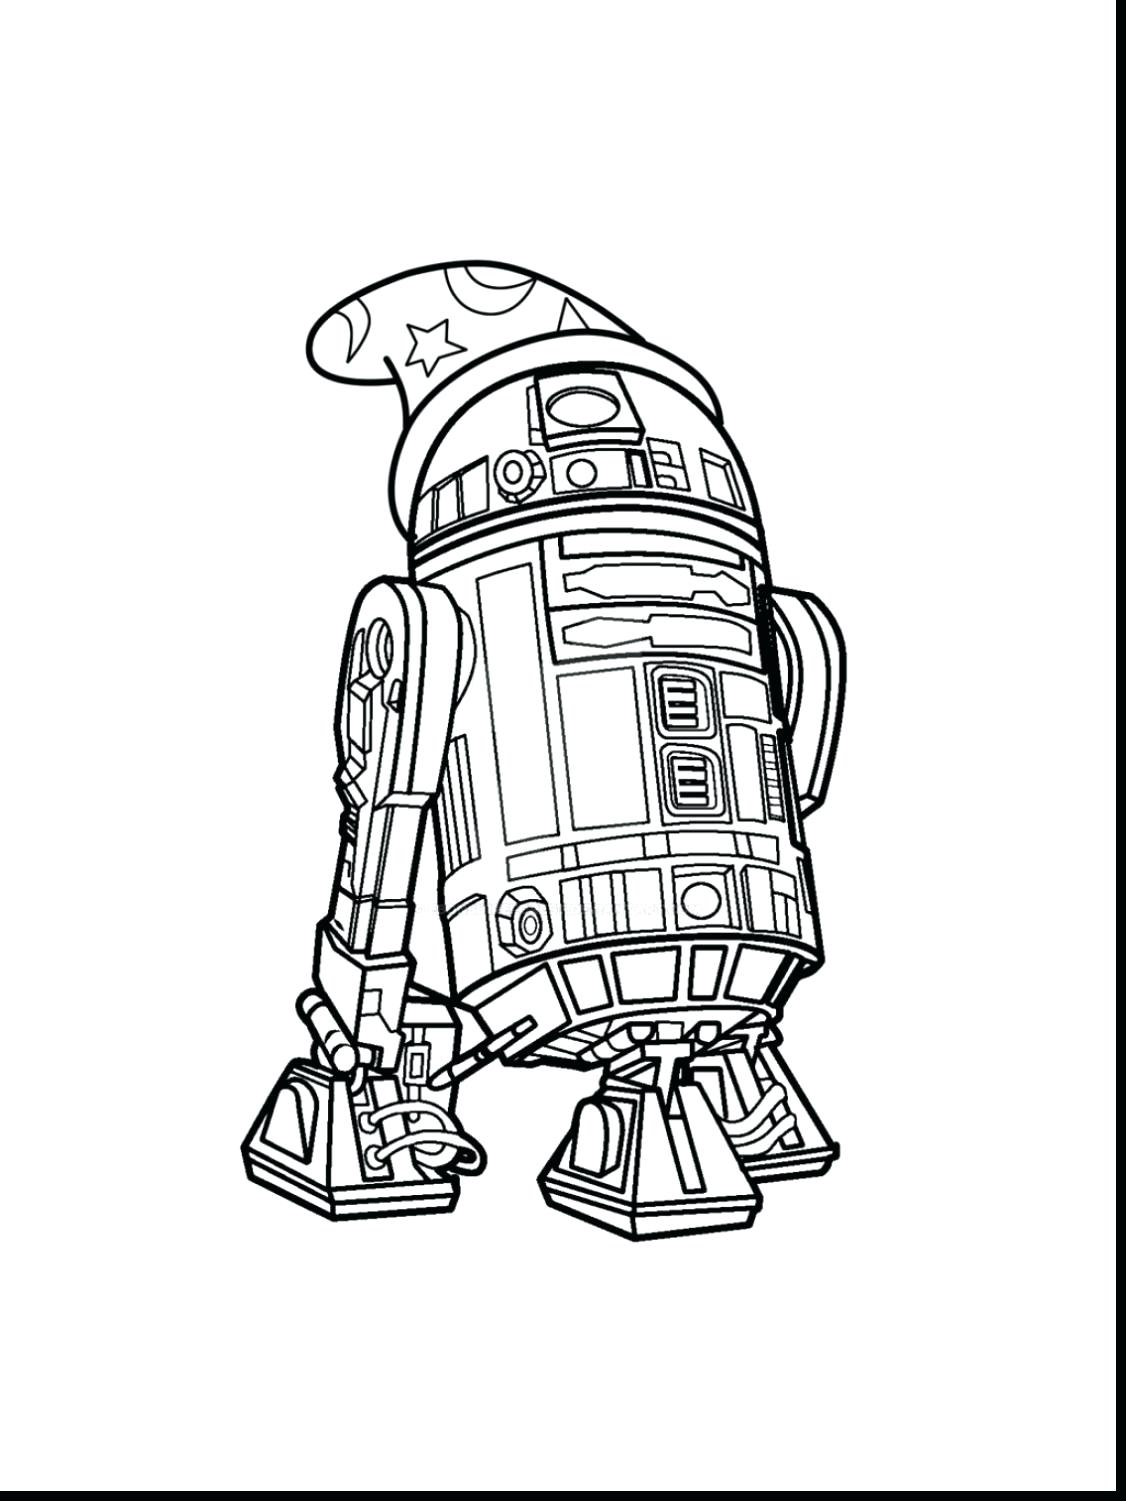 1126x1501 Coloring R2d2 Coloring Pages Printable